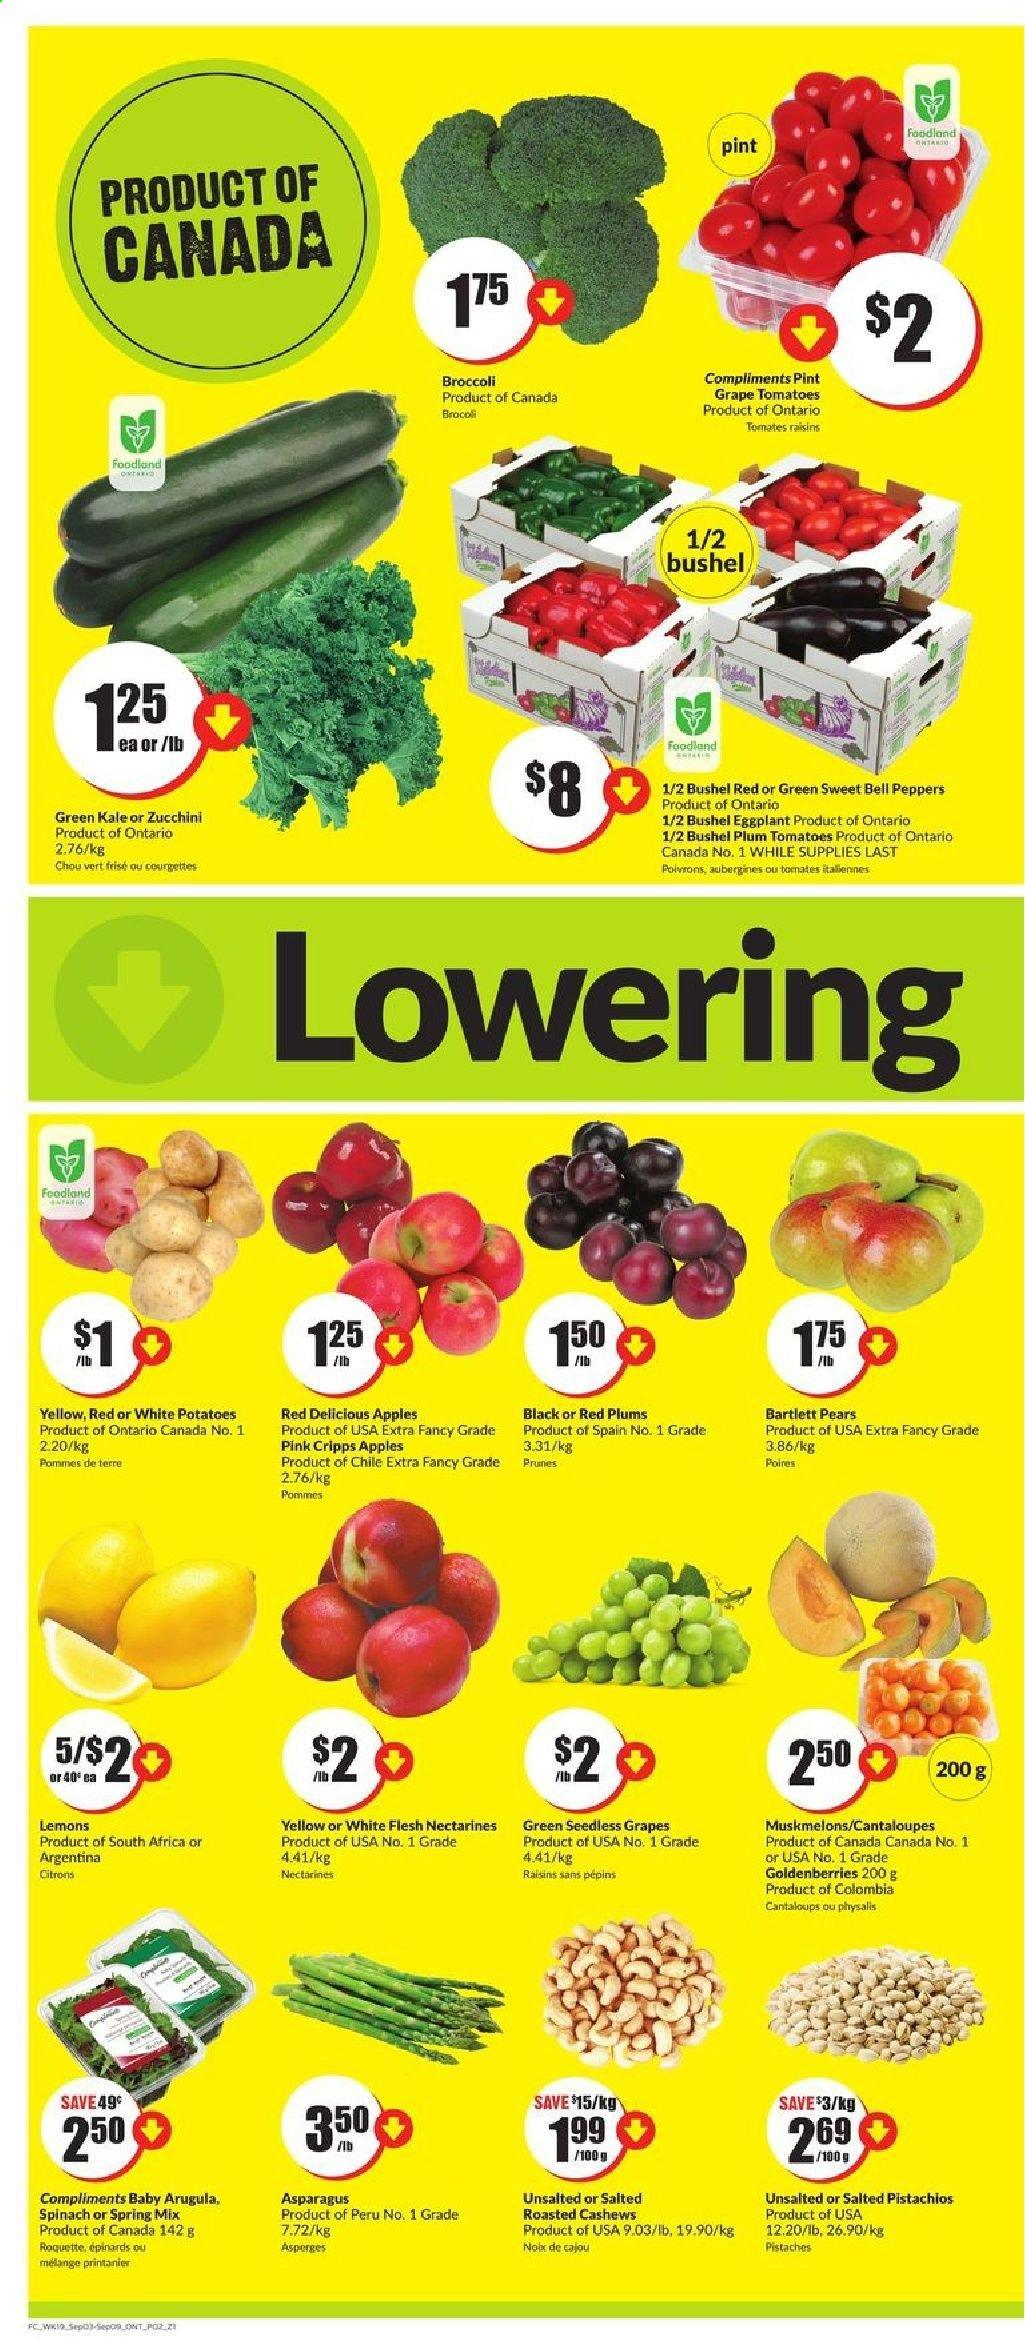 FreshCo. Flyer - September 03, 2020 - September 09, 2020 - Sales products - apples, arugula, asparagus, bartlett pears, bell peppers, broccoli, cantaloupe, cashews, eggplants, grapes, lemons, nectarines, raisins, red delicious, seedless grapes, spinach, tomatoes, zucchini, kale, plums, potatoes, prunes, pears, red plums, tomates, aubergine, brocoli, courgette, epinard, chou, prune, pommes de terre, roquette, spring, apple, peppers, red delicious apples, tomato. Page 2.